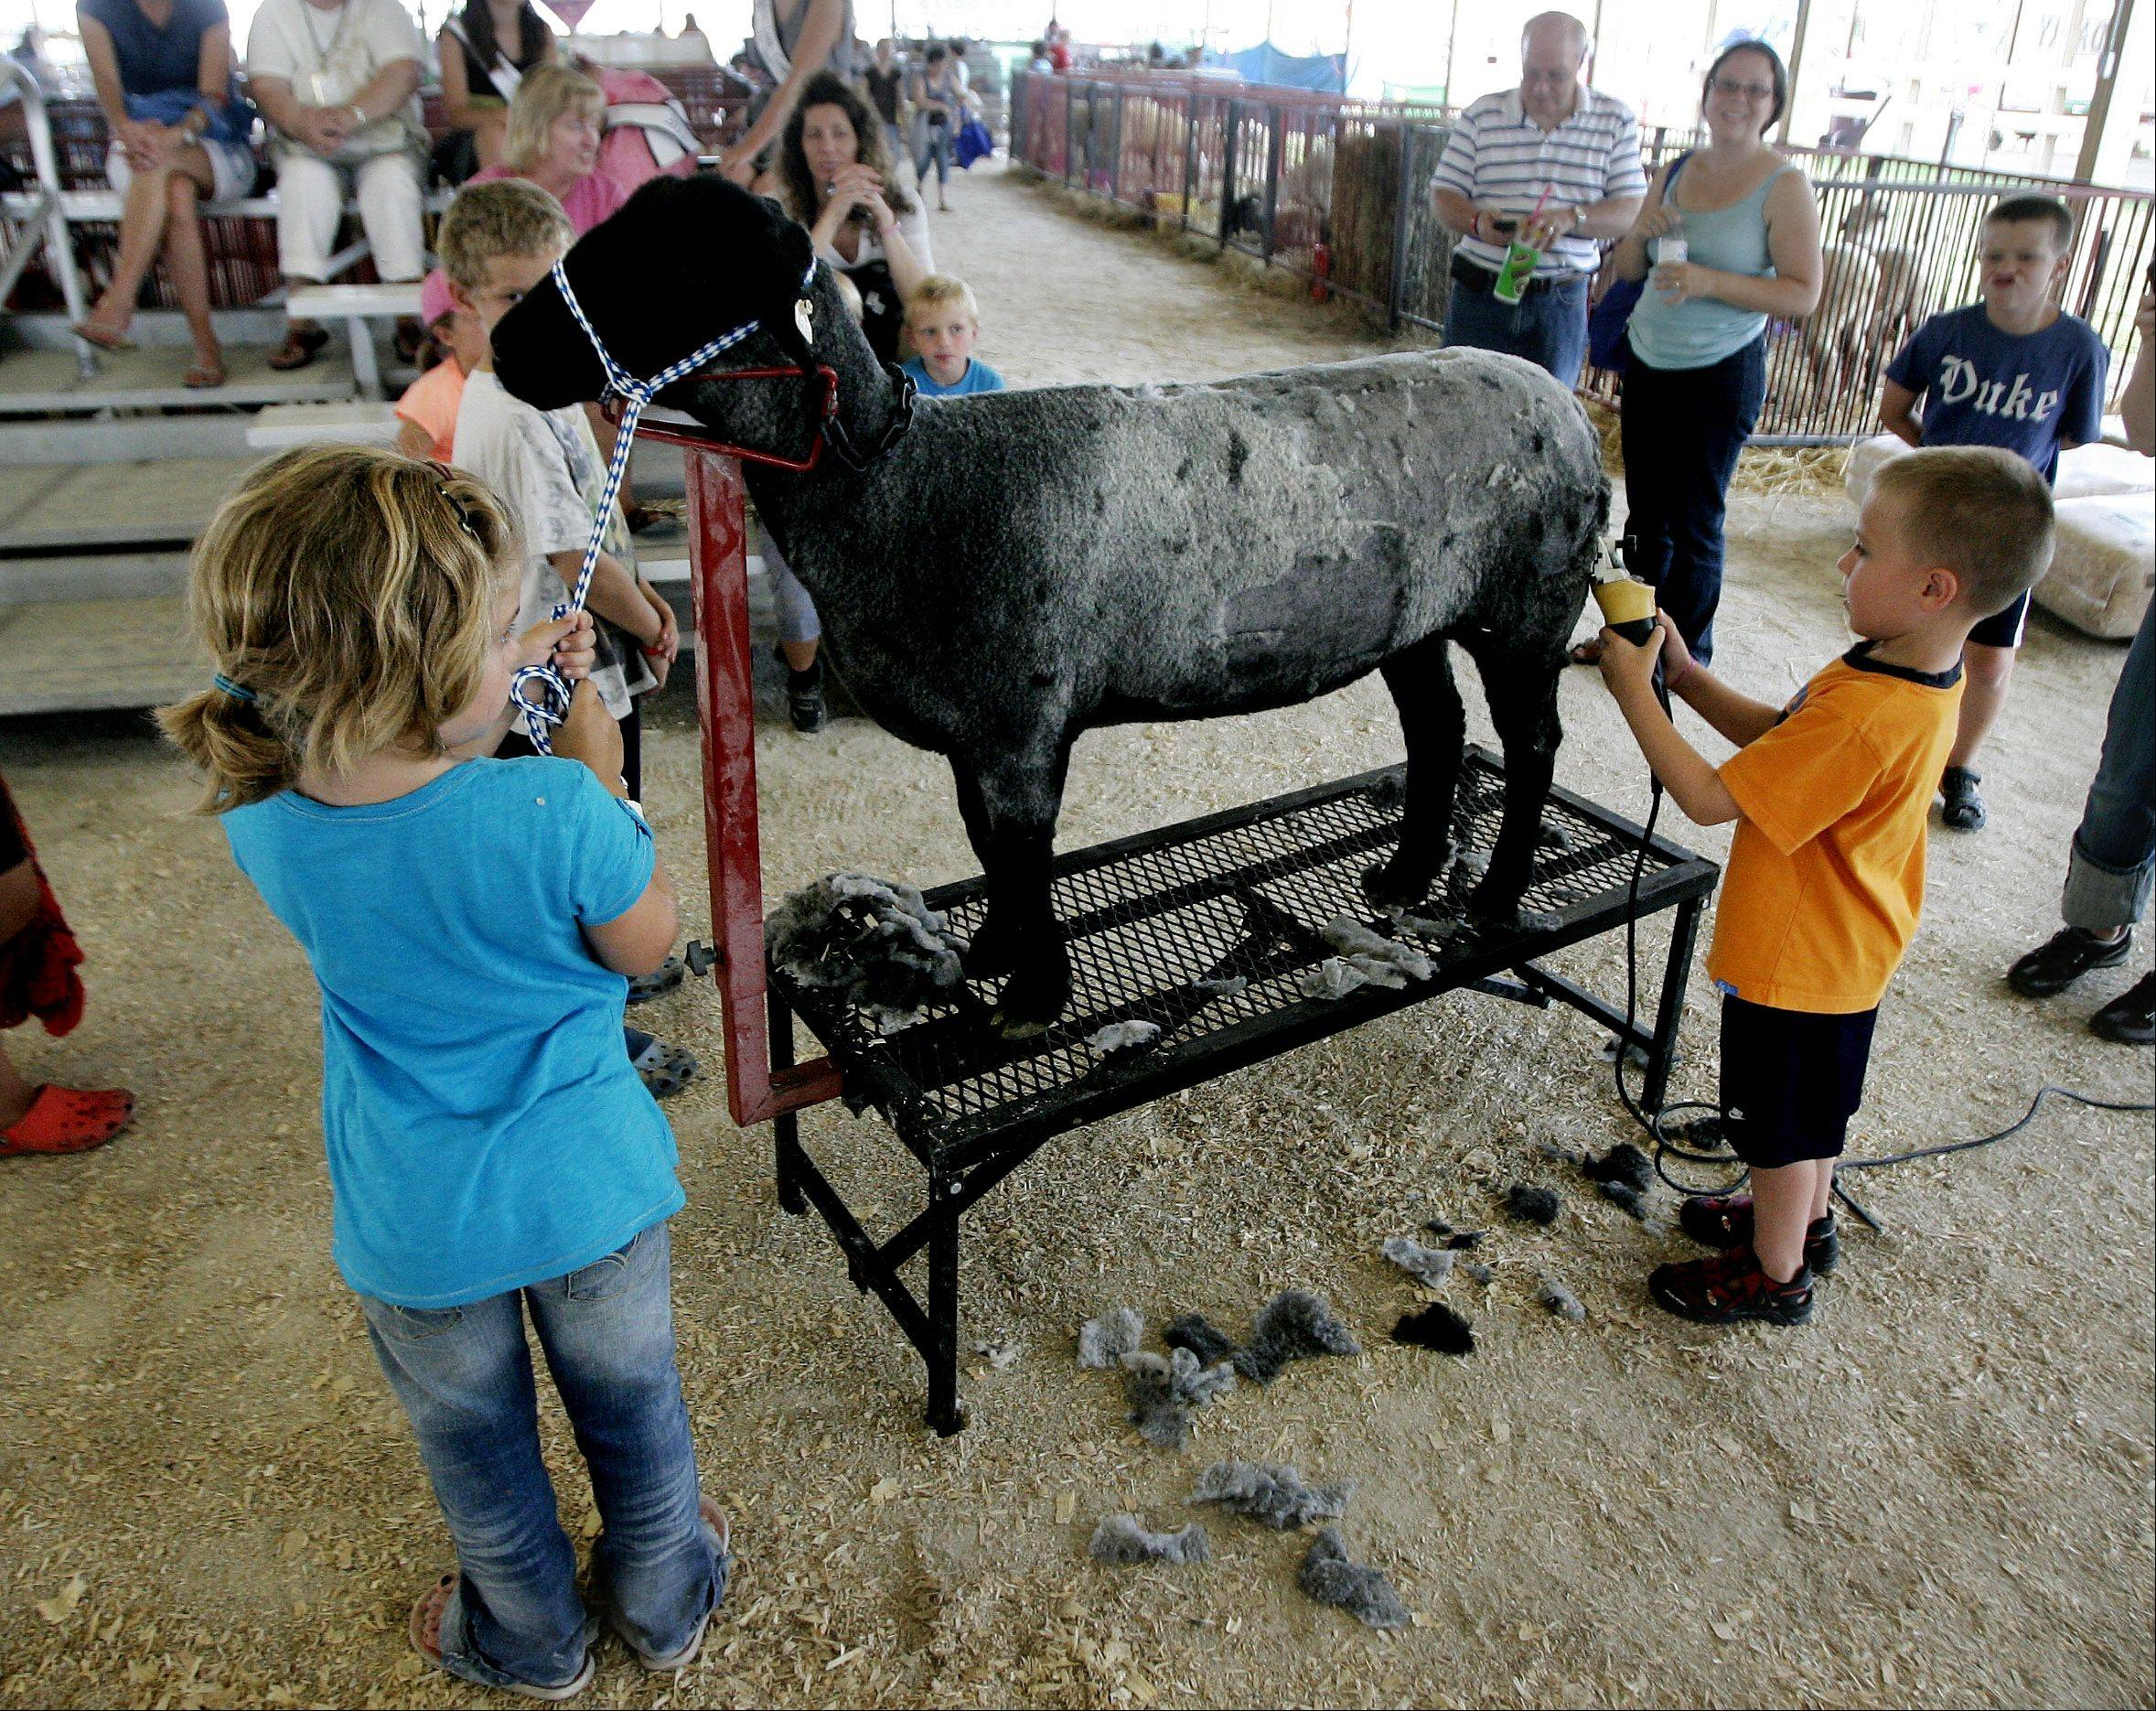 Sarah Fisher, 8, of Zion holds her sheep, Diva, as Ryan Harris, 5, of Gurnee shears it during a demonstration Thursday at the 83rd annual Lake County Fair at the fairgrounds in Grayslake.